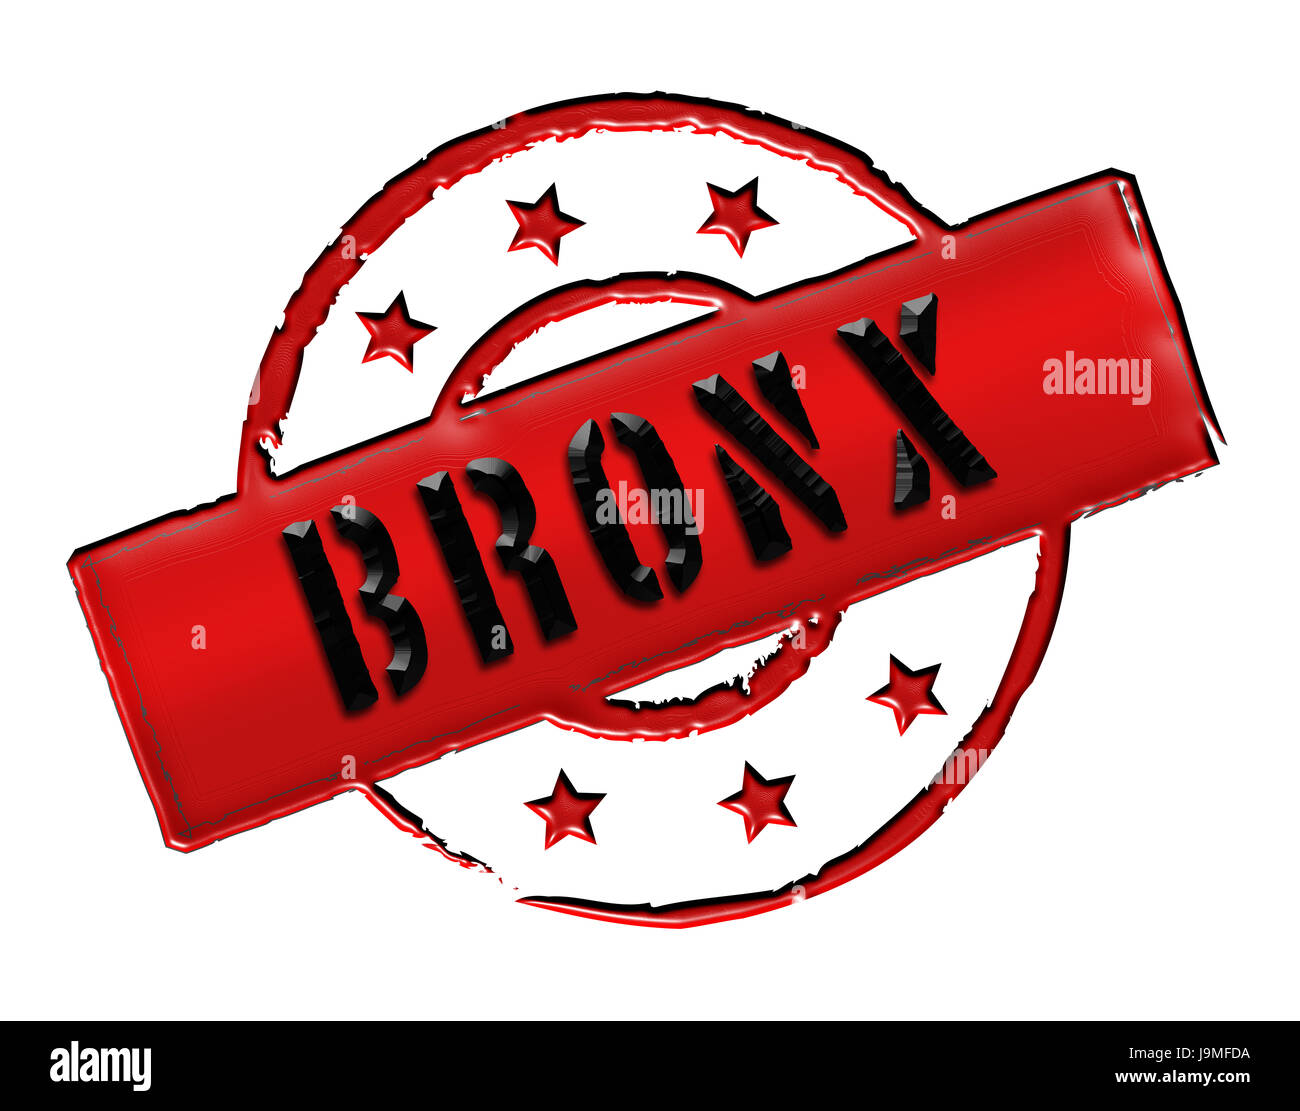 new, brooklyn, manhattan, city, town, isolated, new, caution, slum, important, - Stock Image